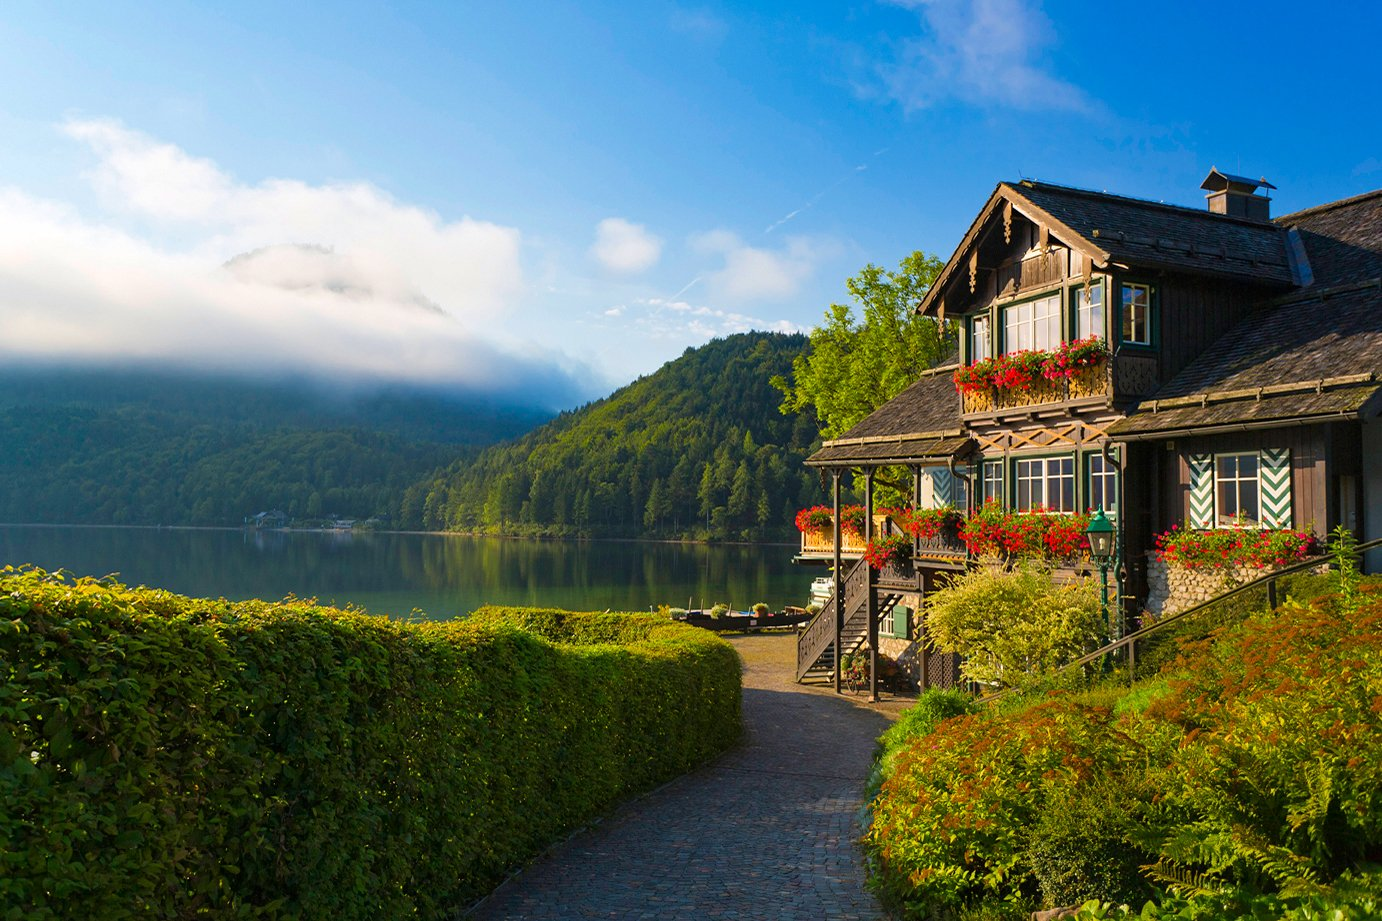 Cycling the Lakes and Rivers of the Salzkammergut